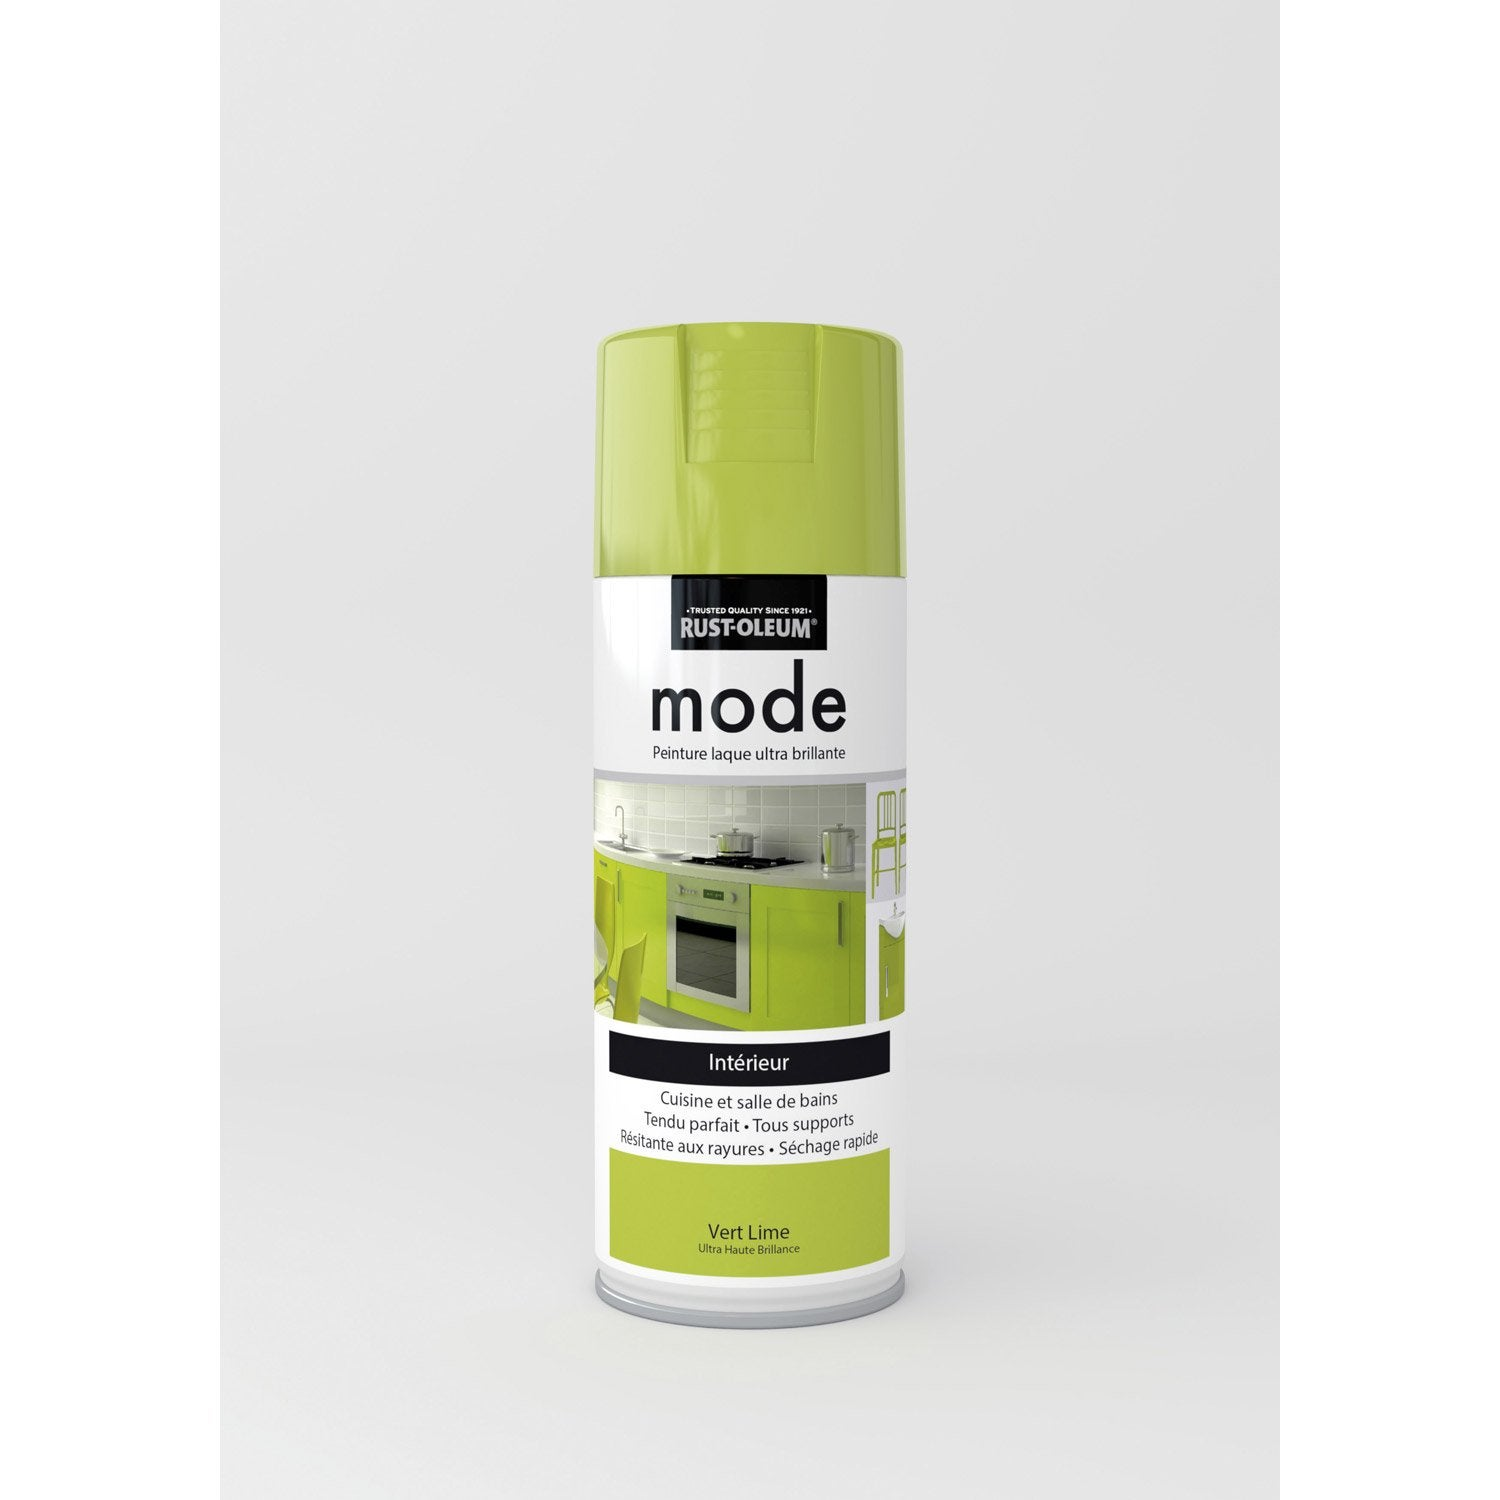 peinture a rosol mode brillant rustoleum vert lime 0 4 l leroy merlin. Black Bedroom Furniture Sets. Home Design Ideas